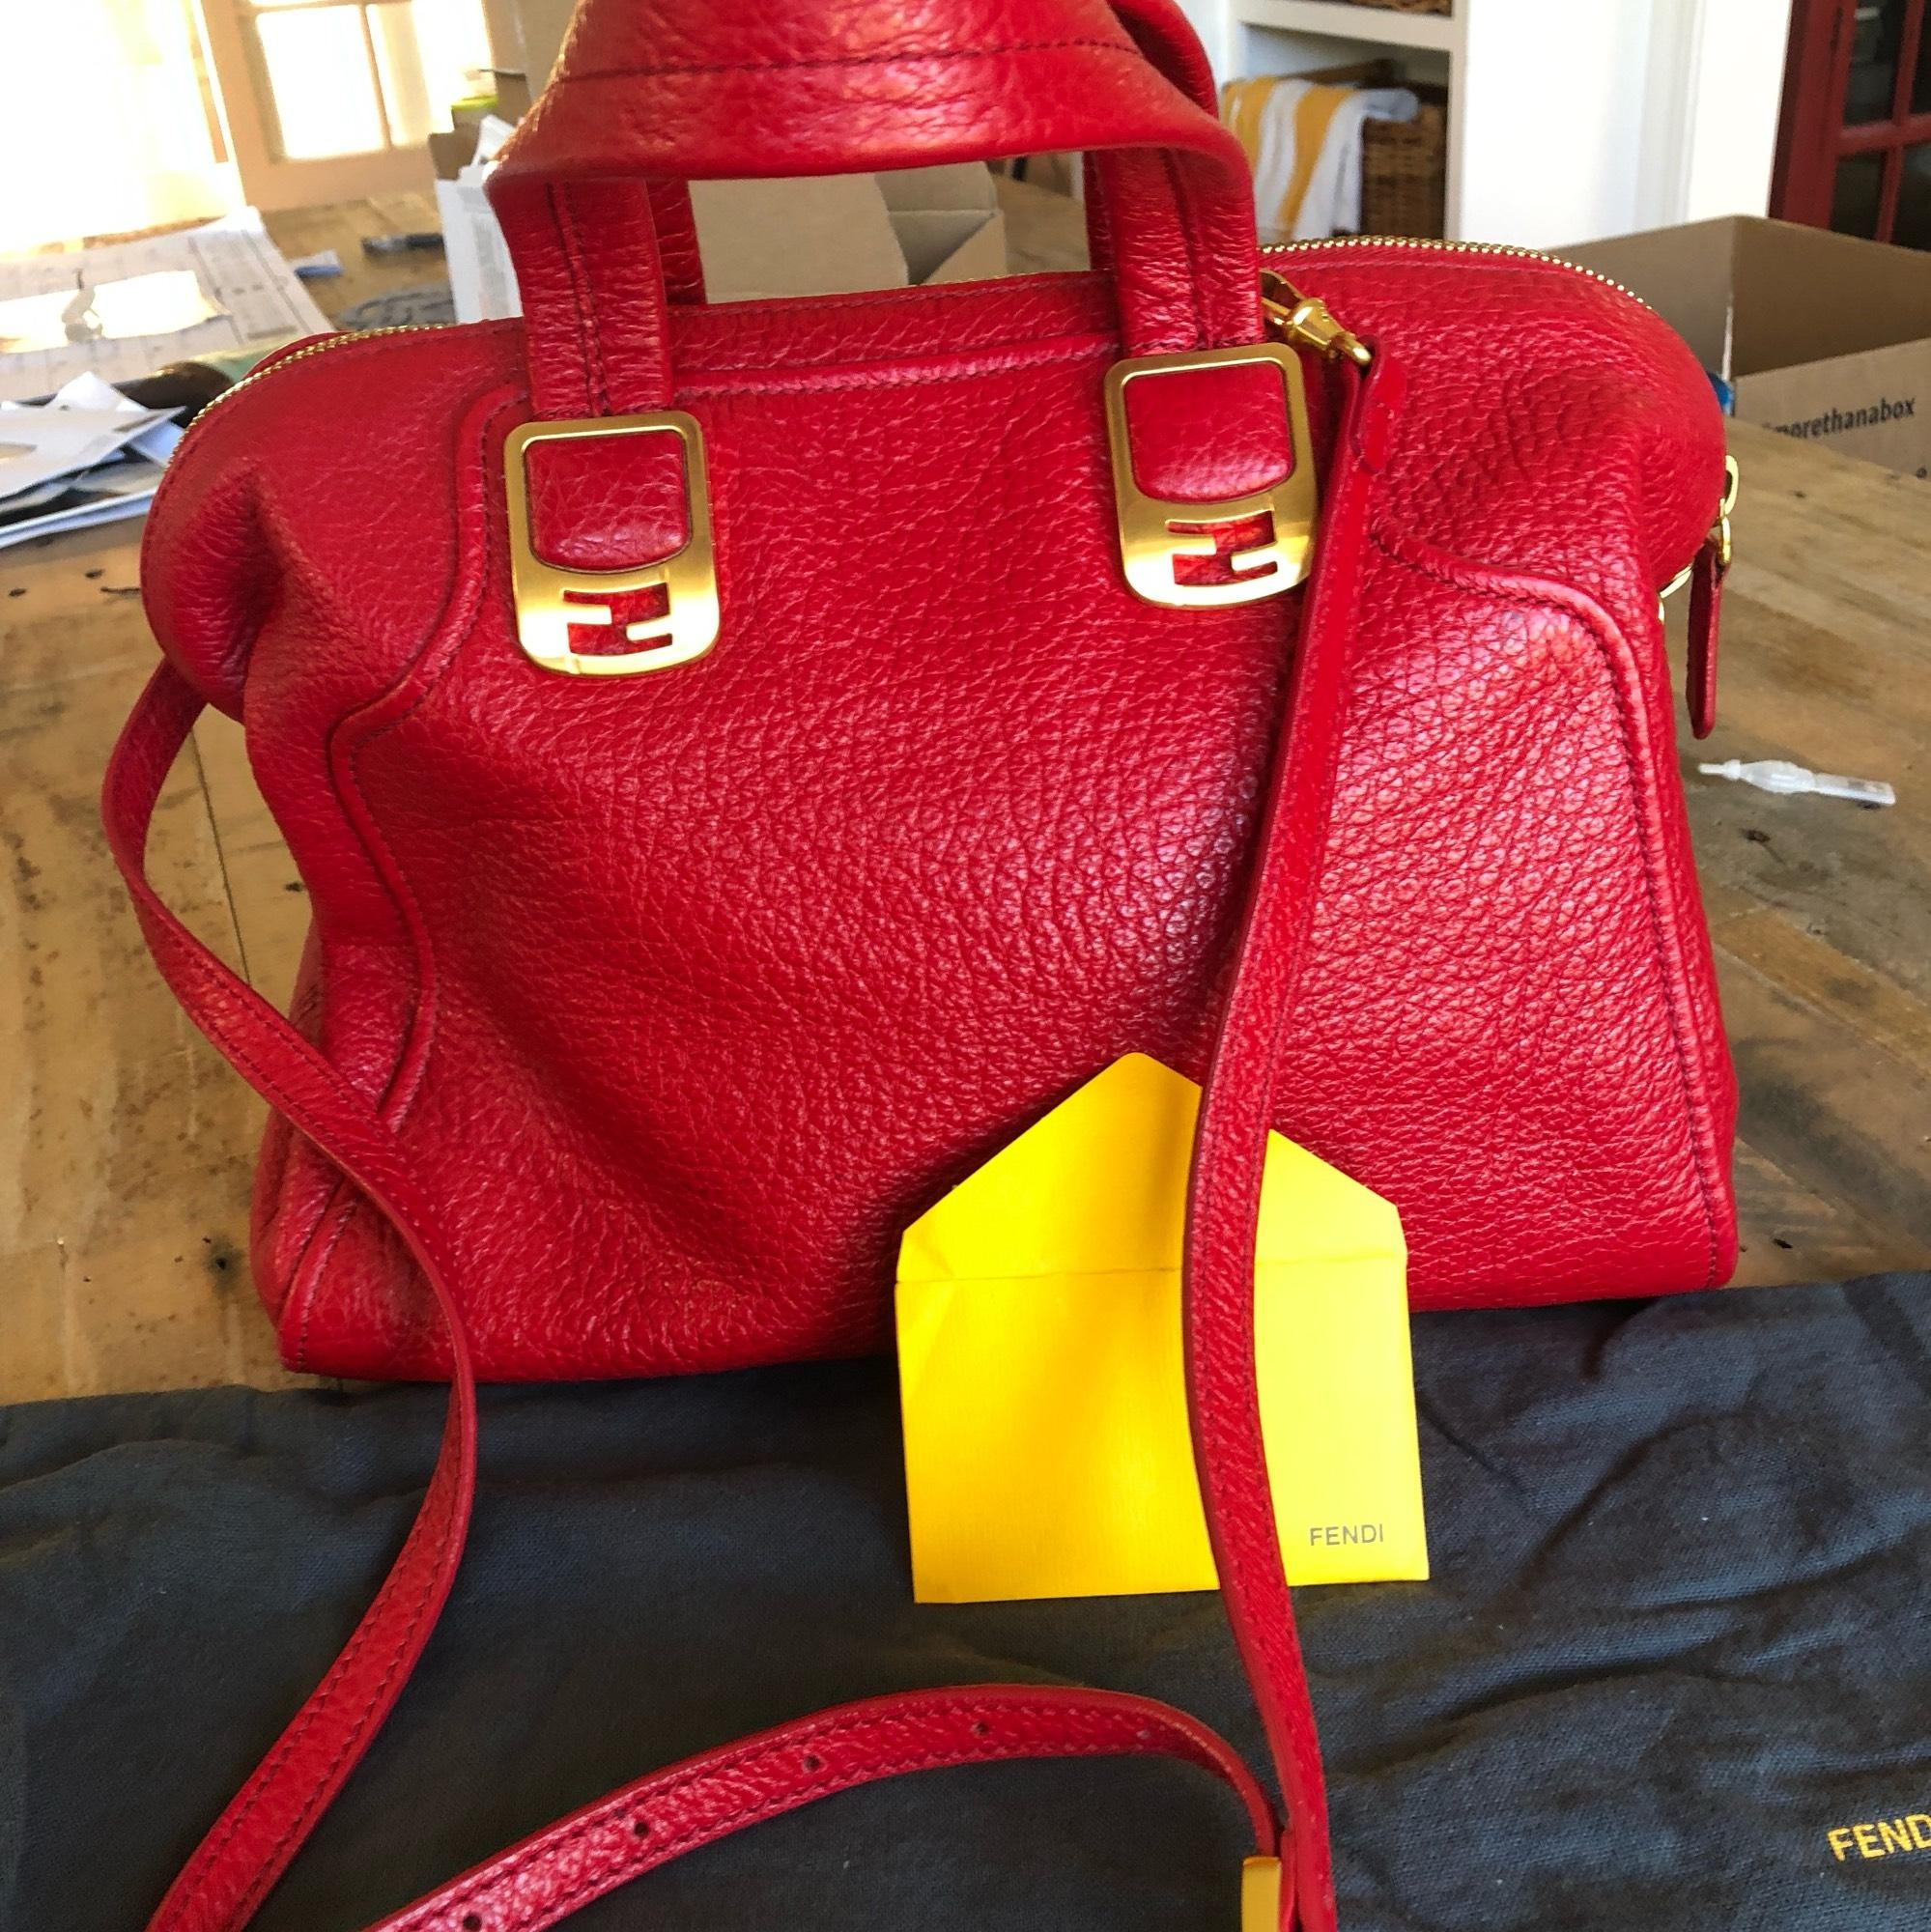 4c830973665 ... discount code for fendi chameleon satchel red pebbled leather cross  body bag tradesy 08741 700a8 ...